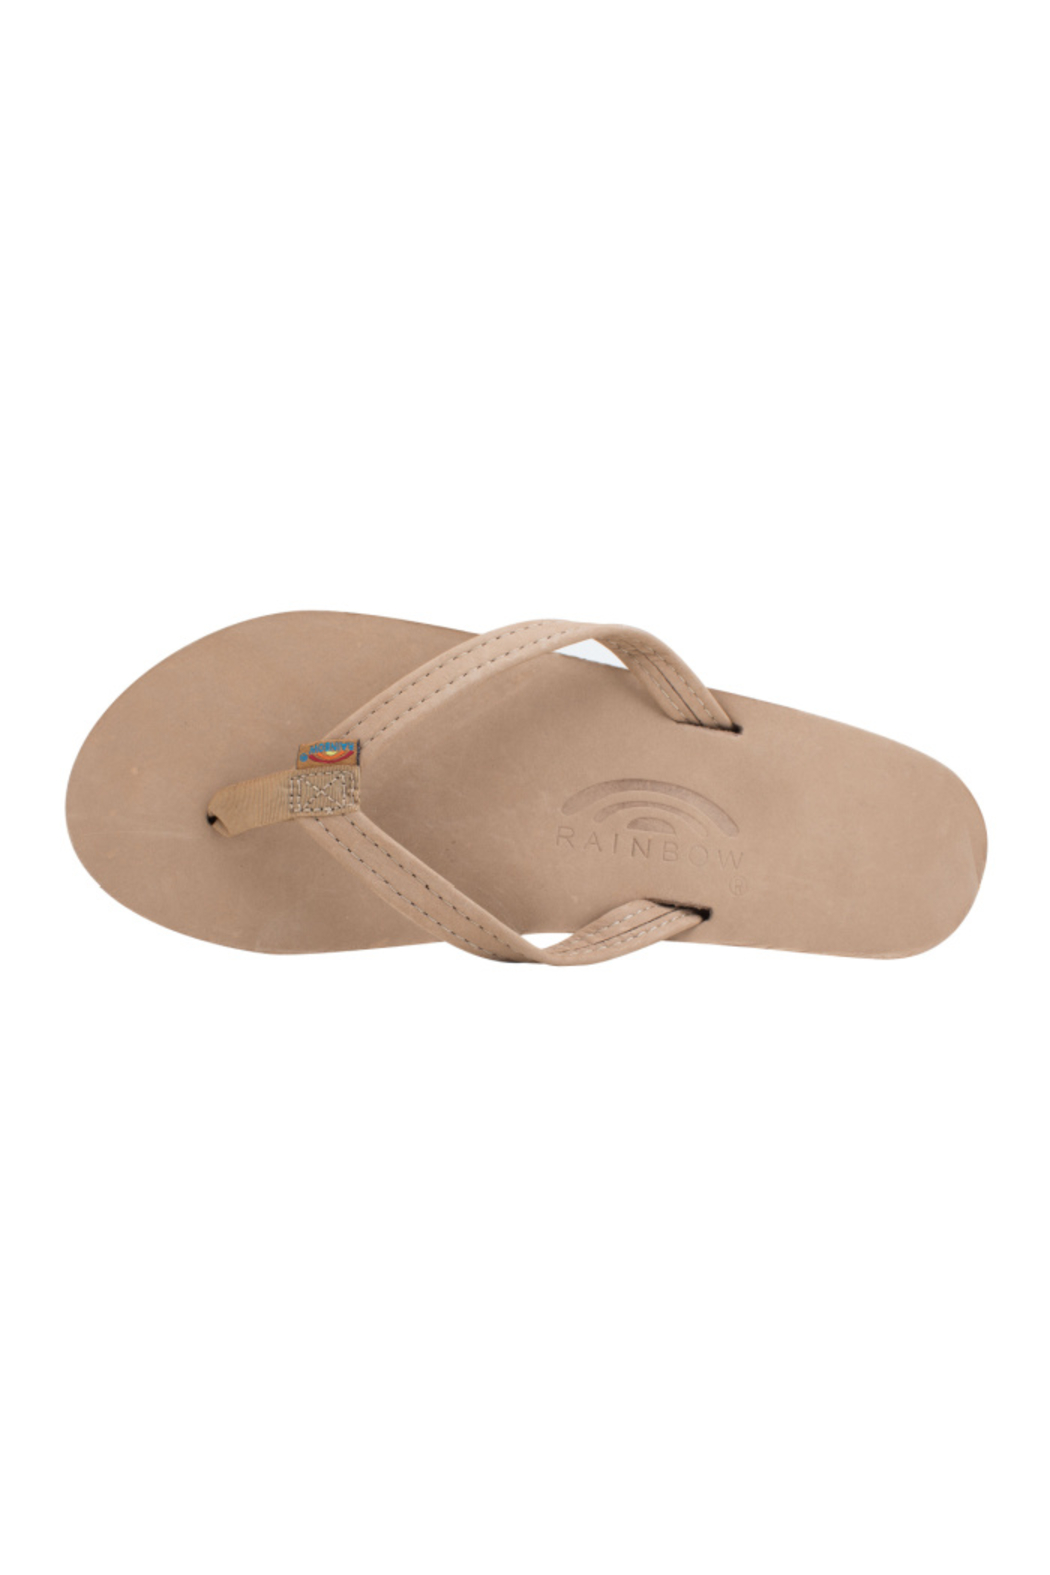 Rainbow Women's Single Layer Premier Leather with Arch Support - Front Full Image